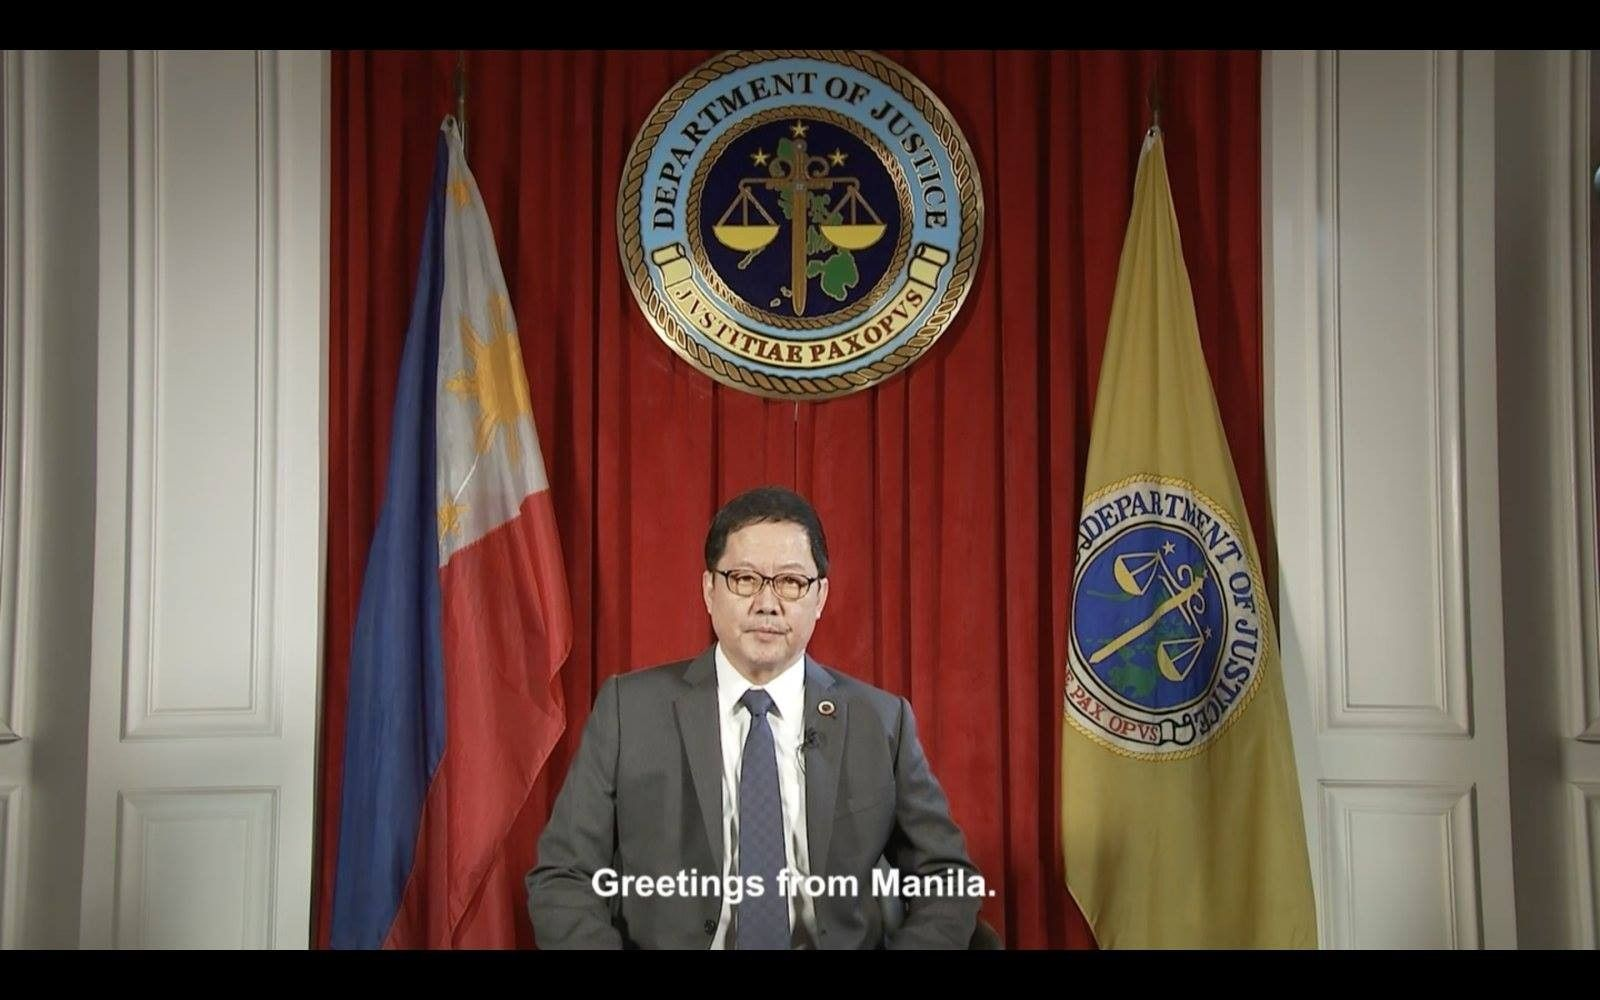 PNP failed to follow protocols in many drug operations, Guevarra tells UN rights body